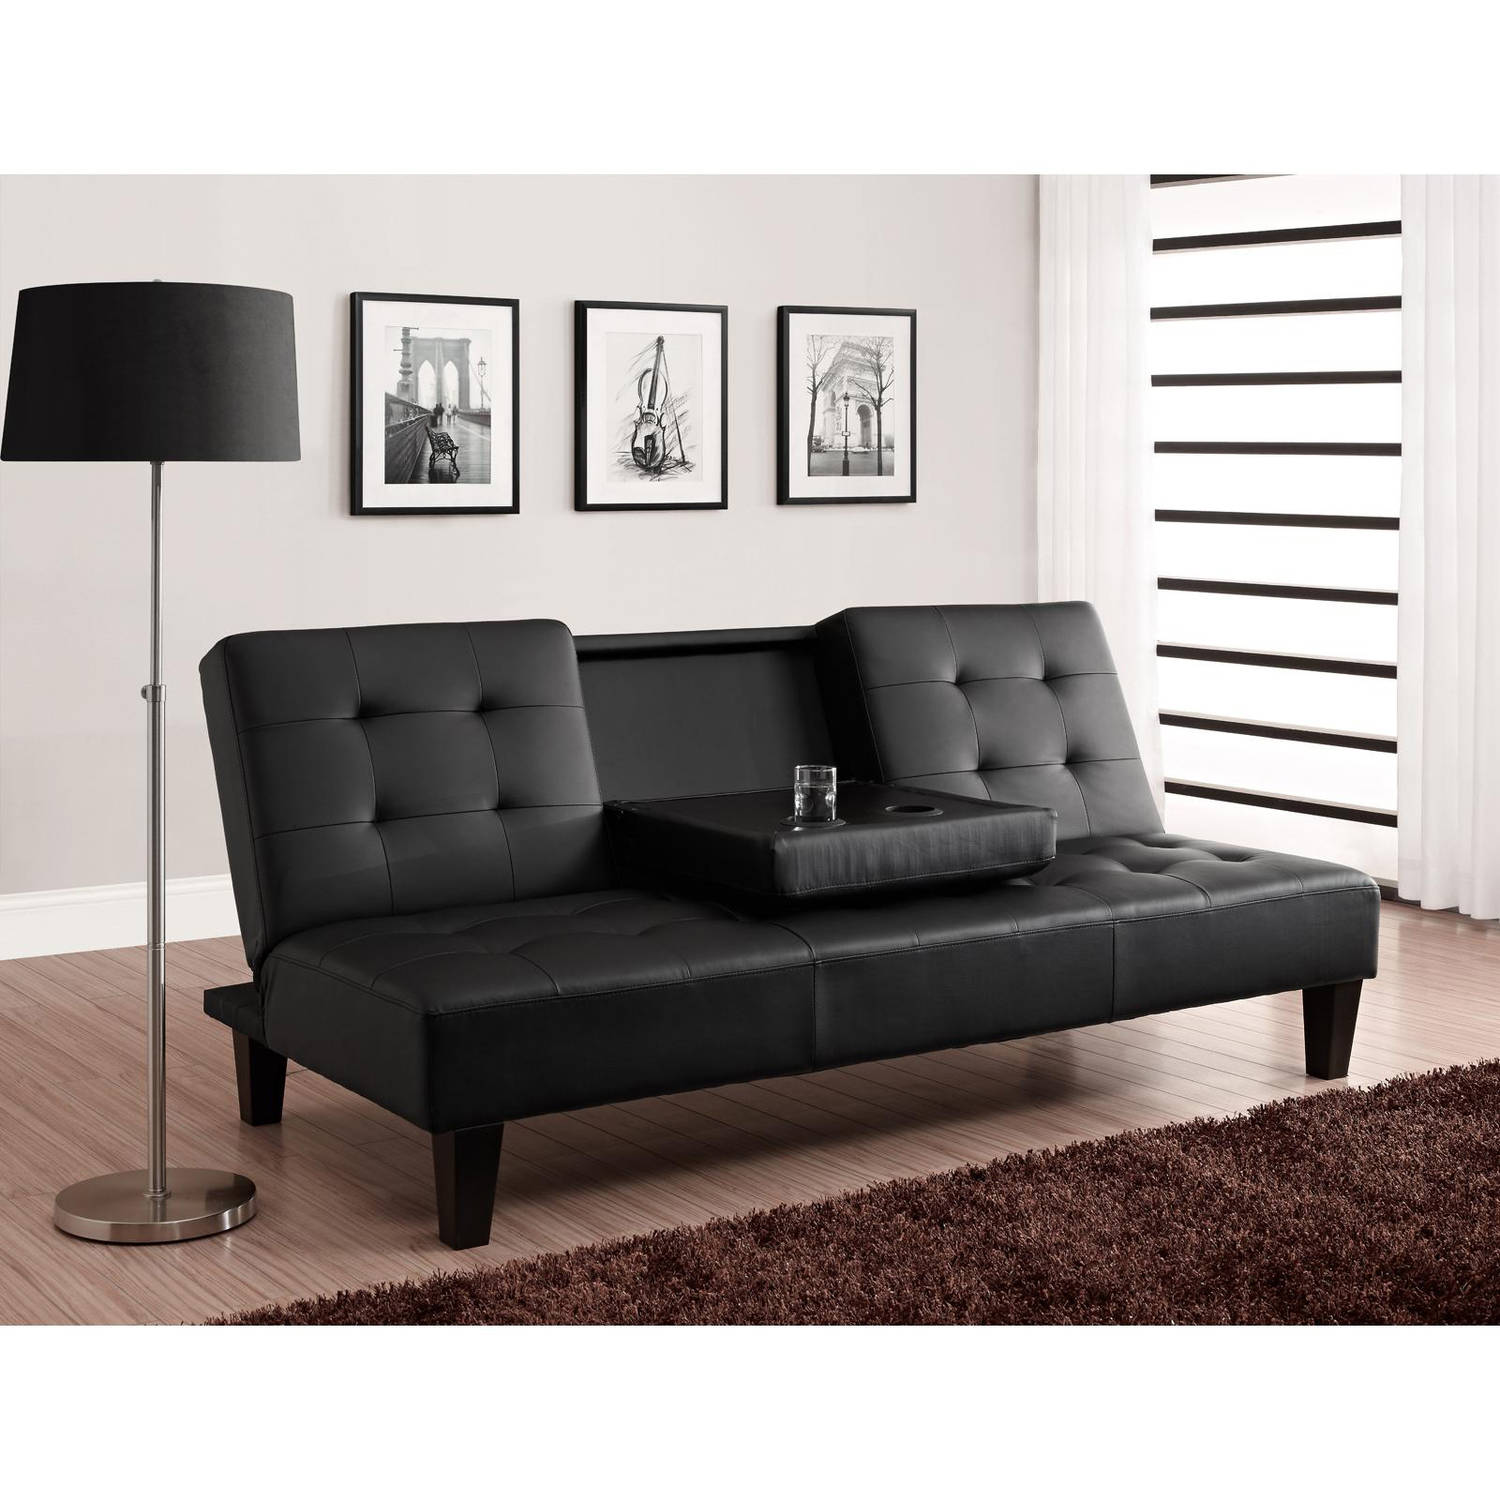 Image of: Black Futon Covers Target